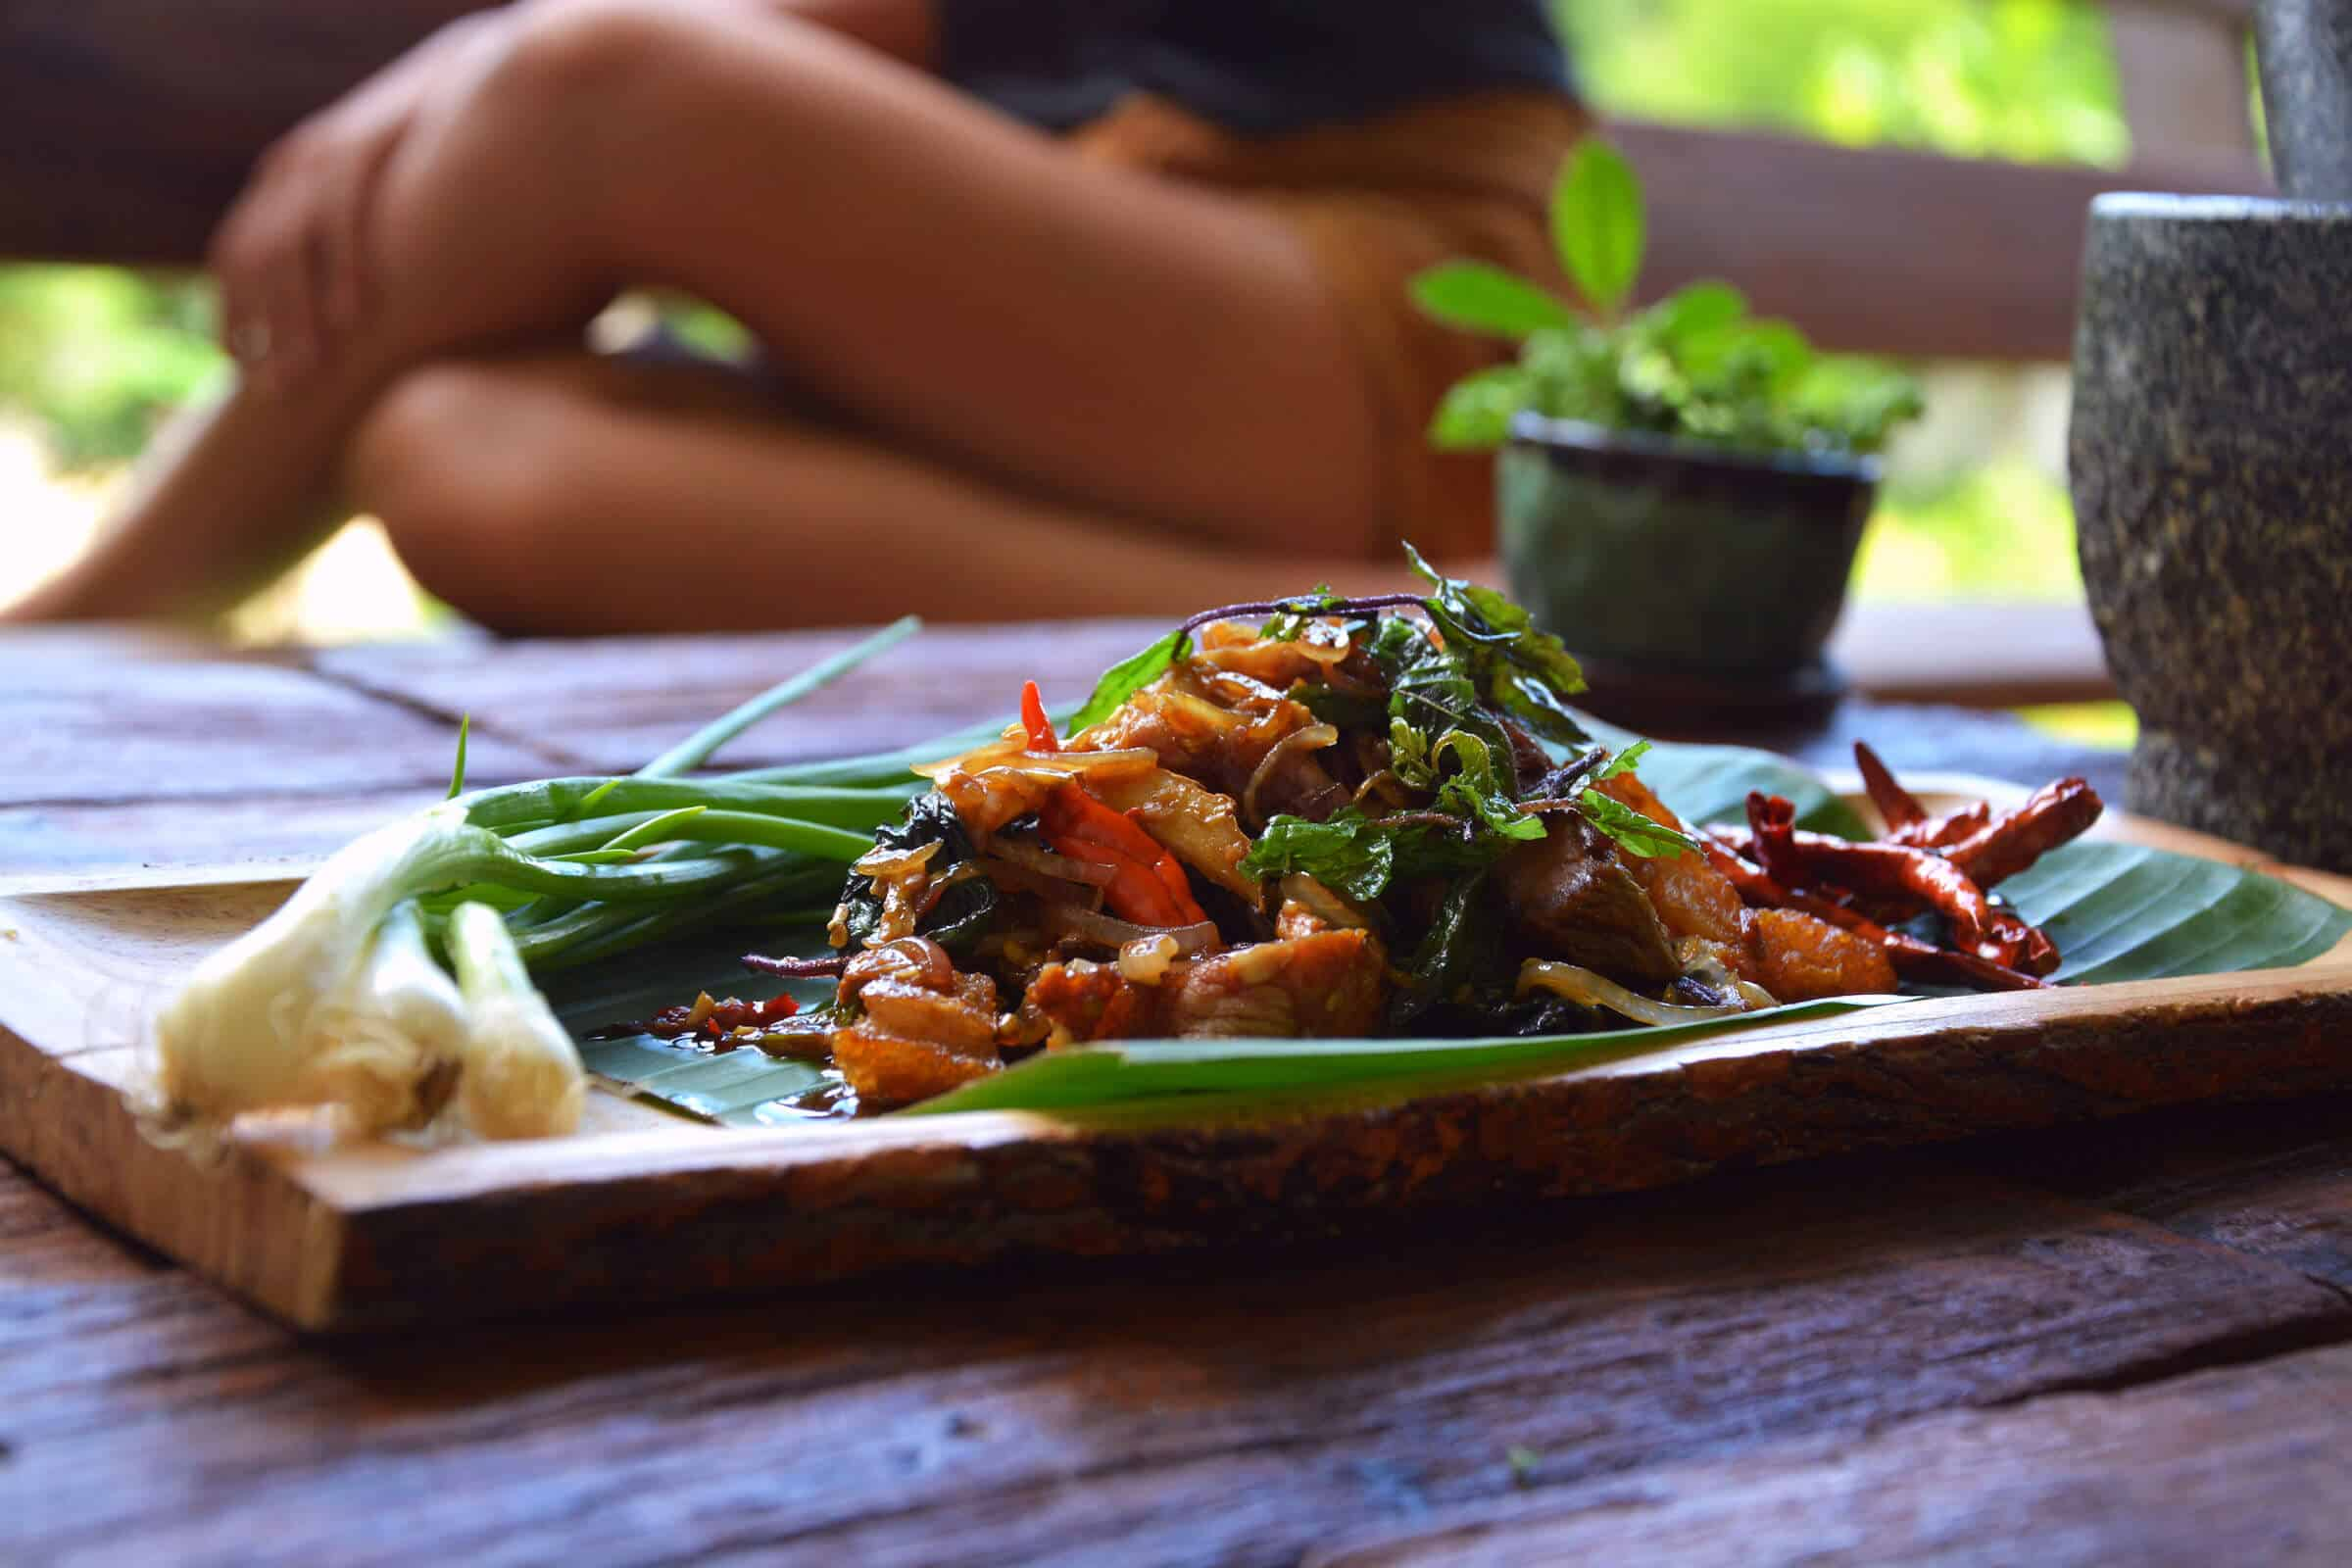 Thai Basil holy basil pork on Pinterest! Keto Paleo recipe gluten free low carb